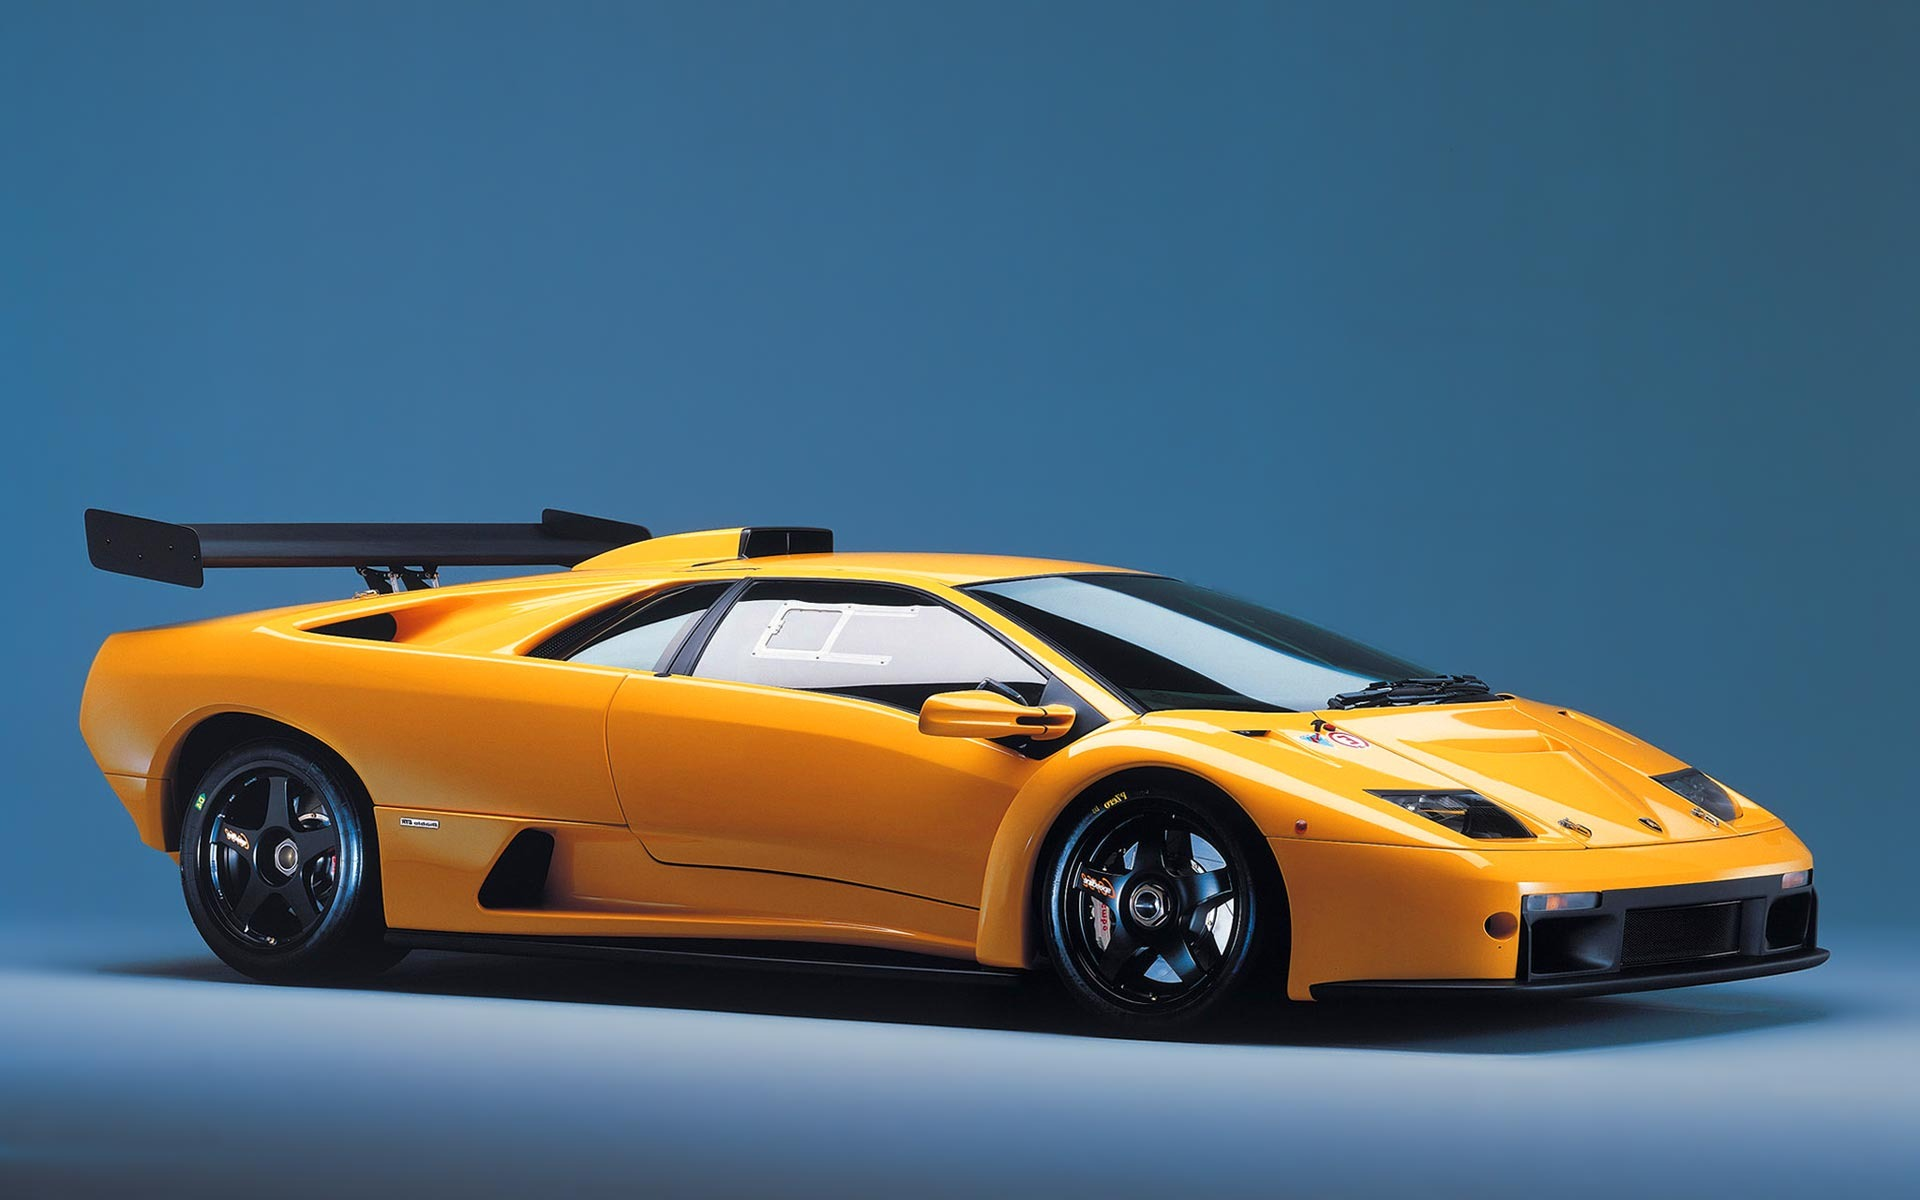 Lamborghini Diablo Gtr Hd Wallpaper